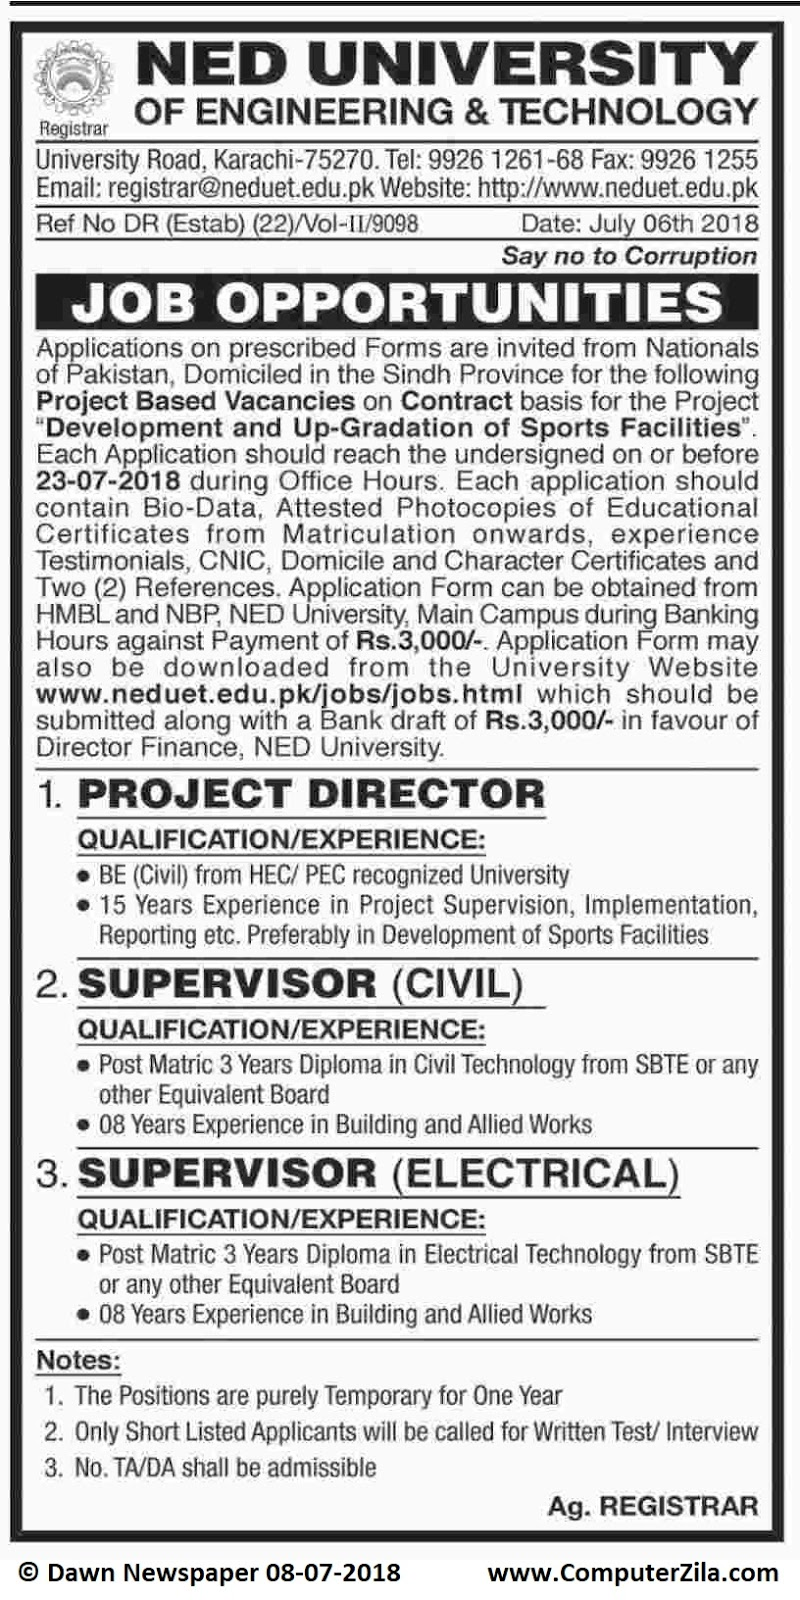 Job Opportunities at NED University of Engineering & Technology